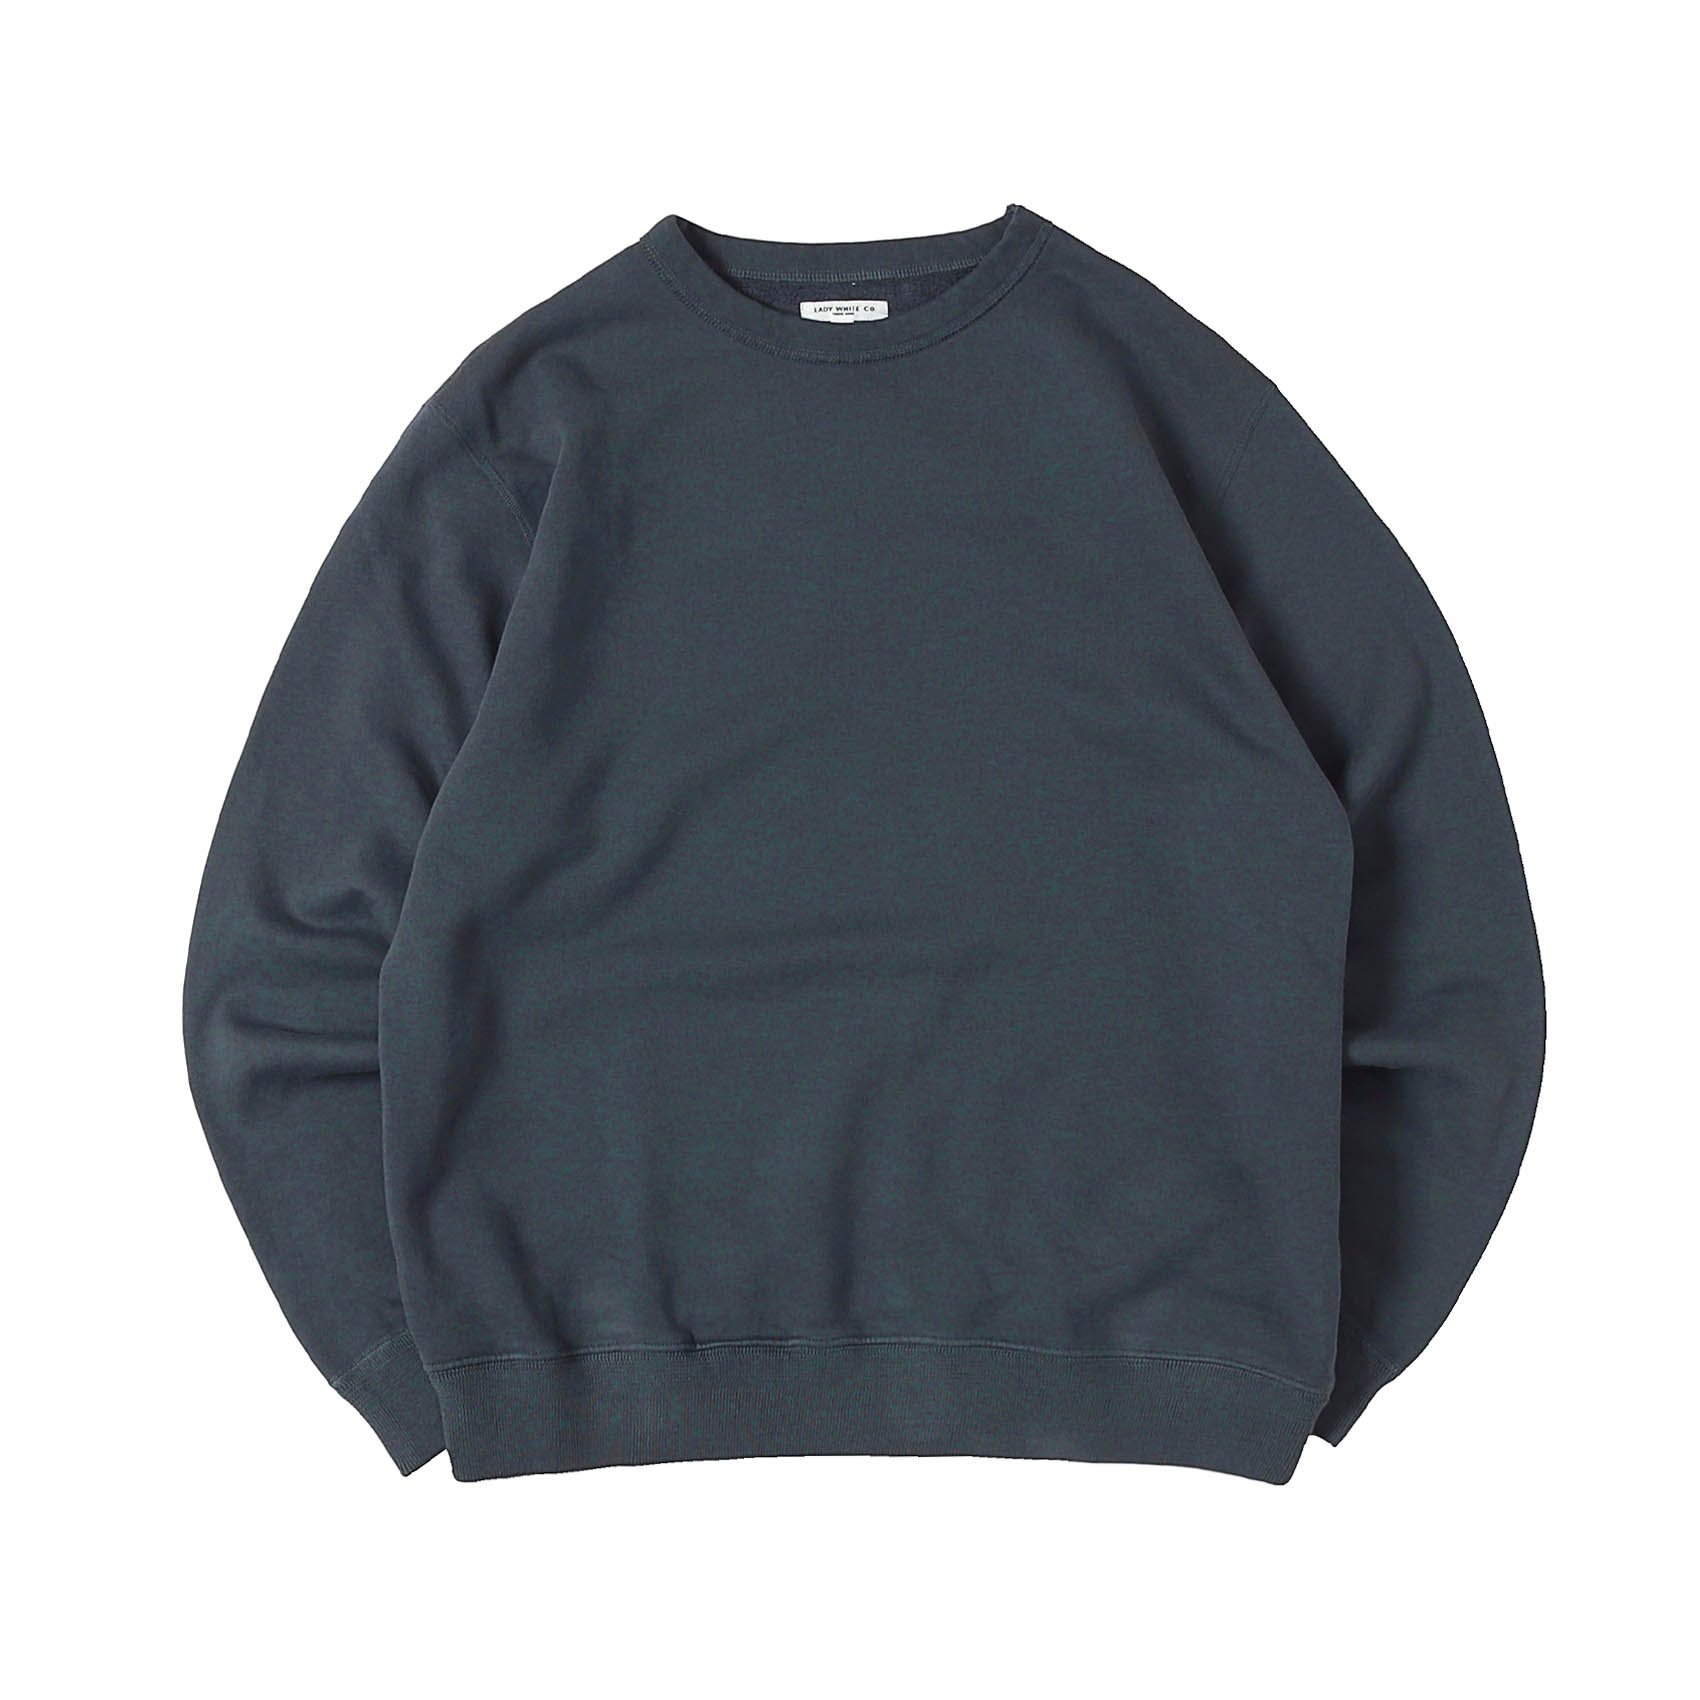 44 FLEECE - NIGHT GREY